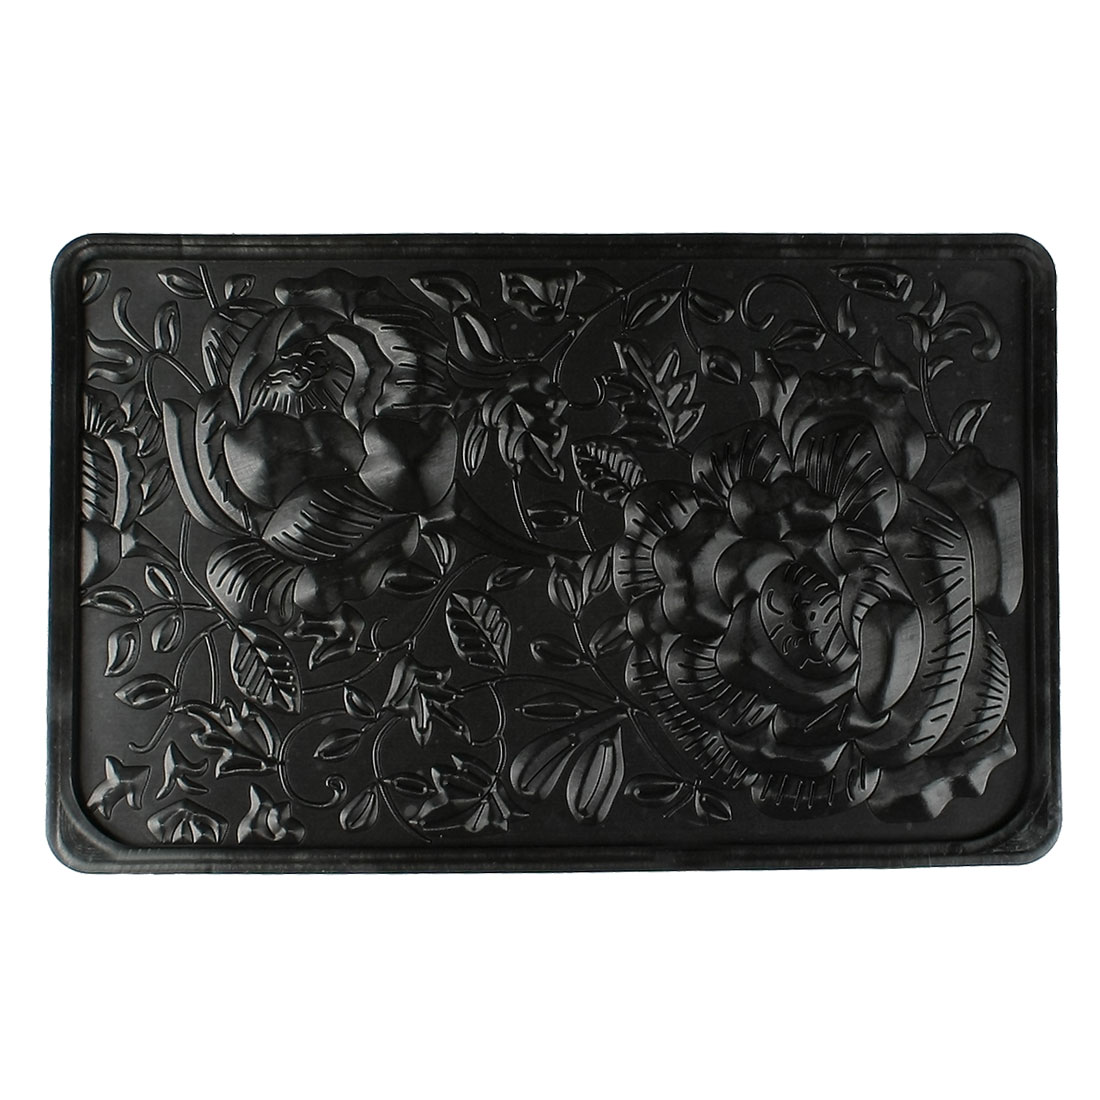 Auto Car Textured Floral Pattern Phone Holding Nonslip Rubber Pad Mat Black